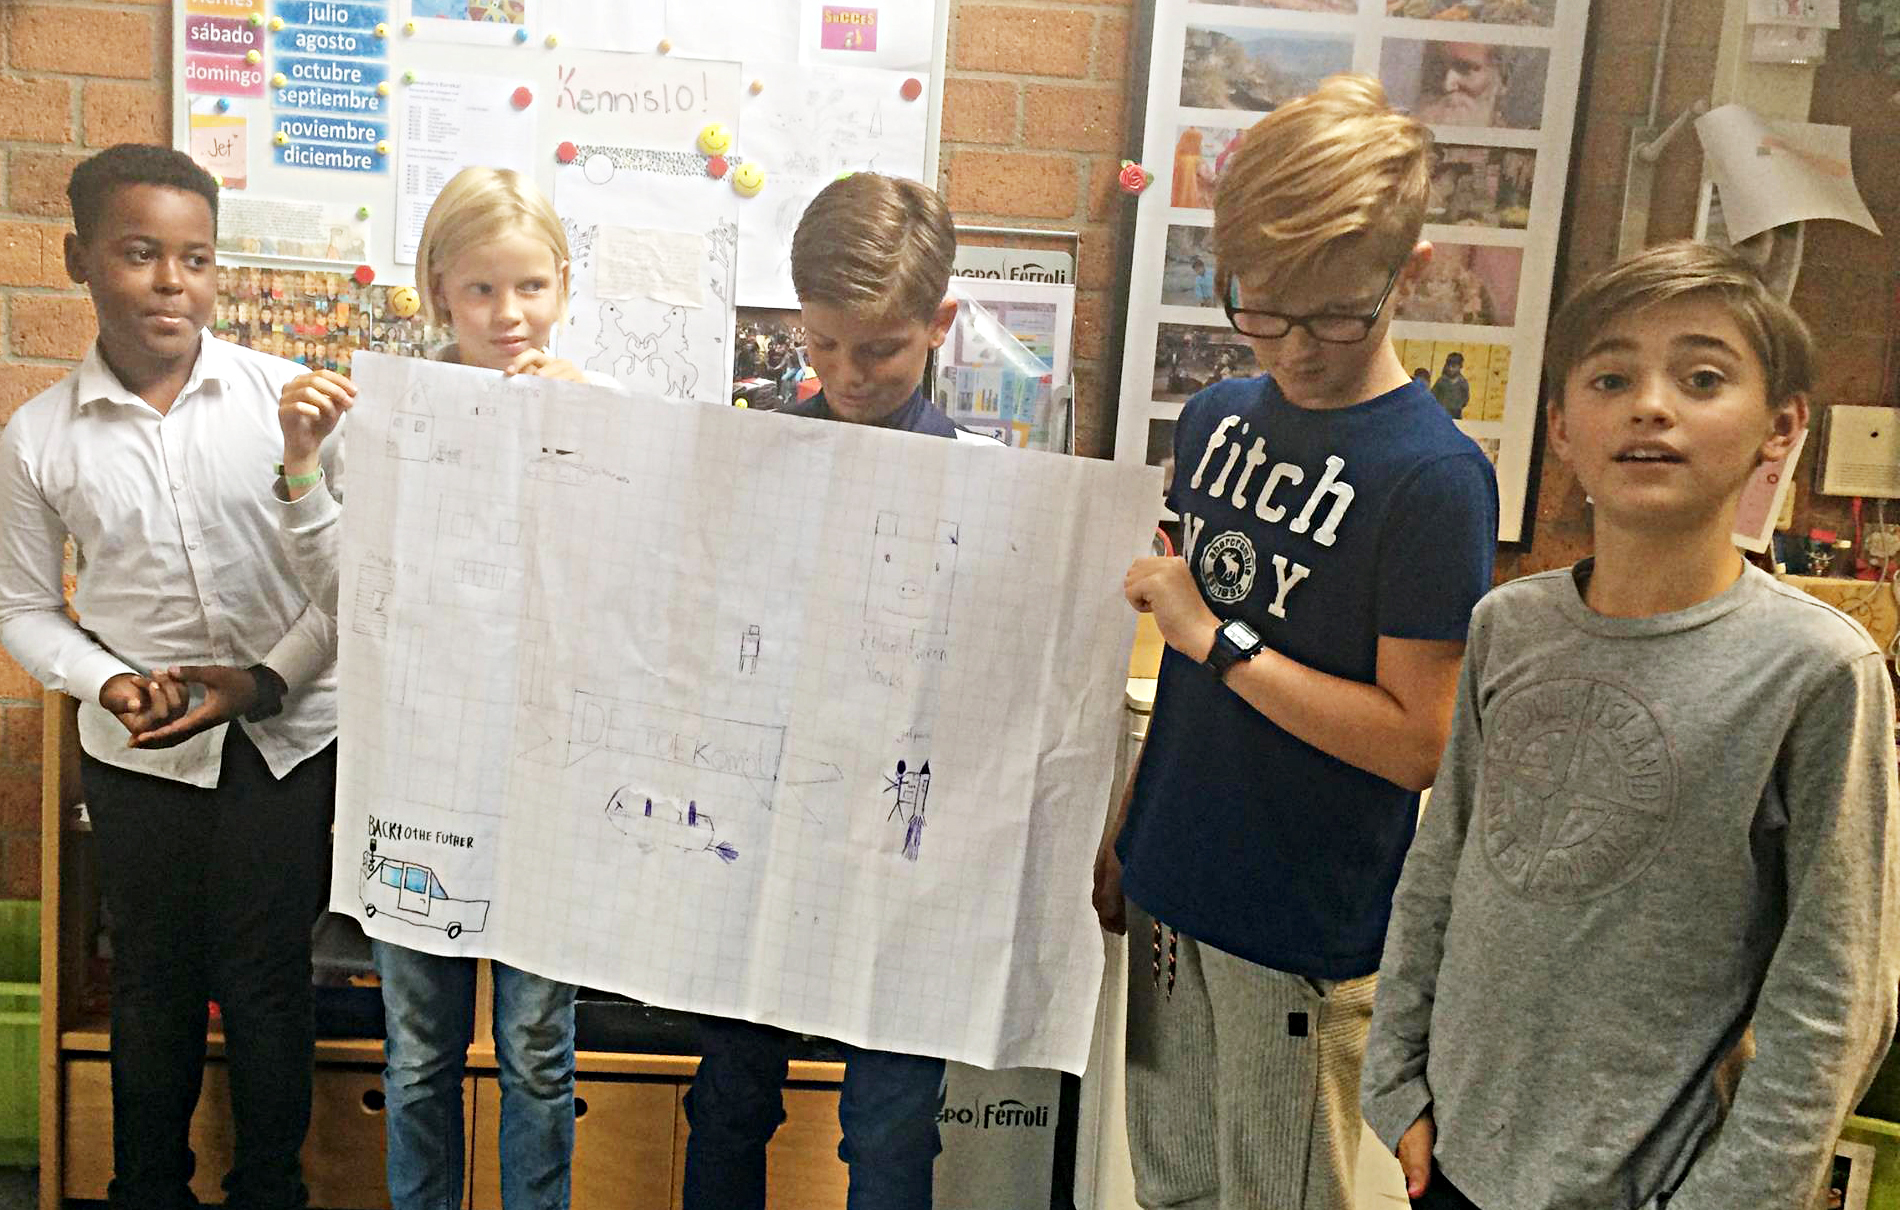 Dutch children share their ideas from an exercise by Teach The Future.